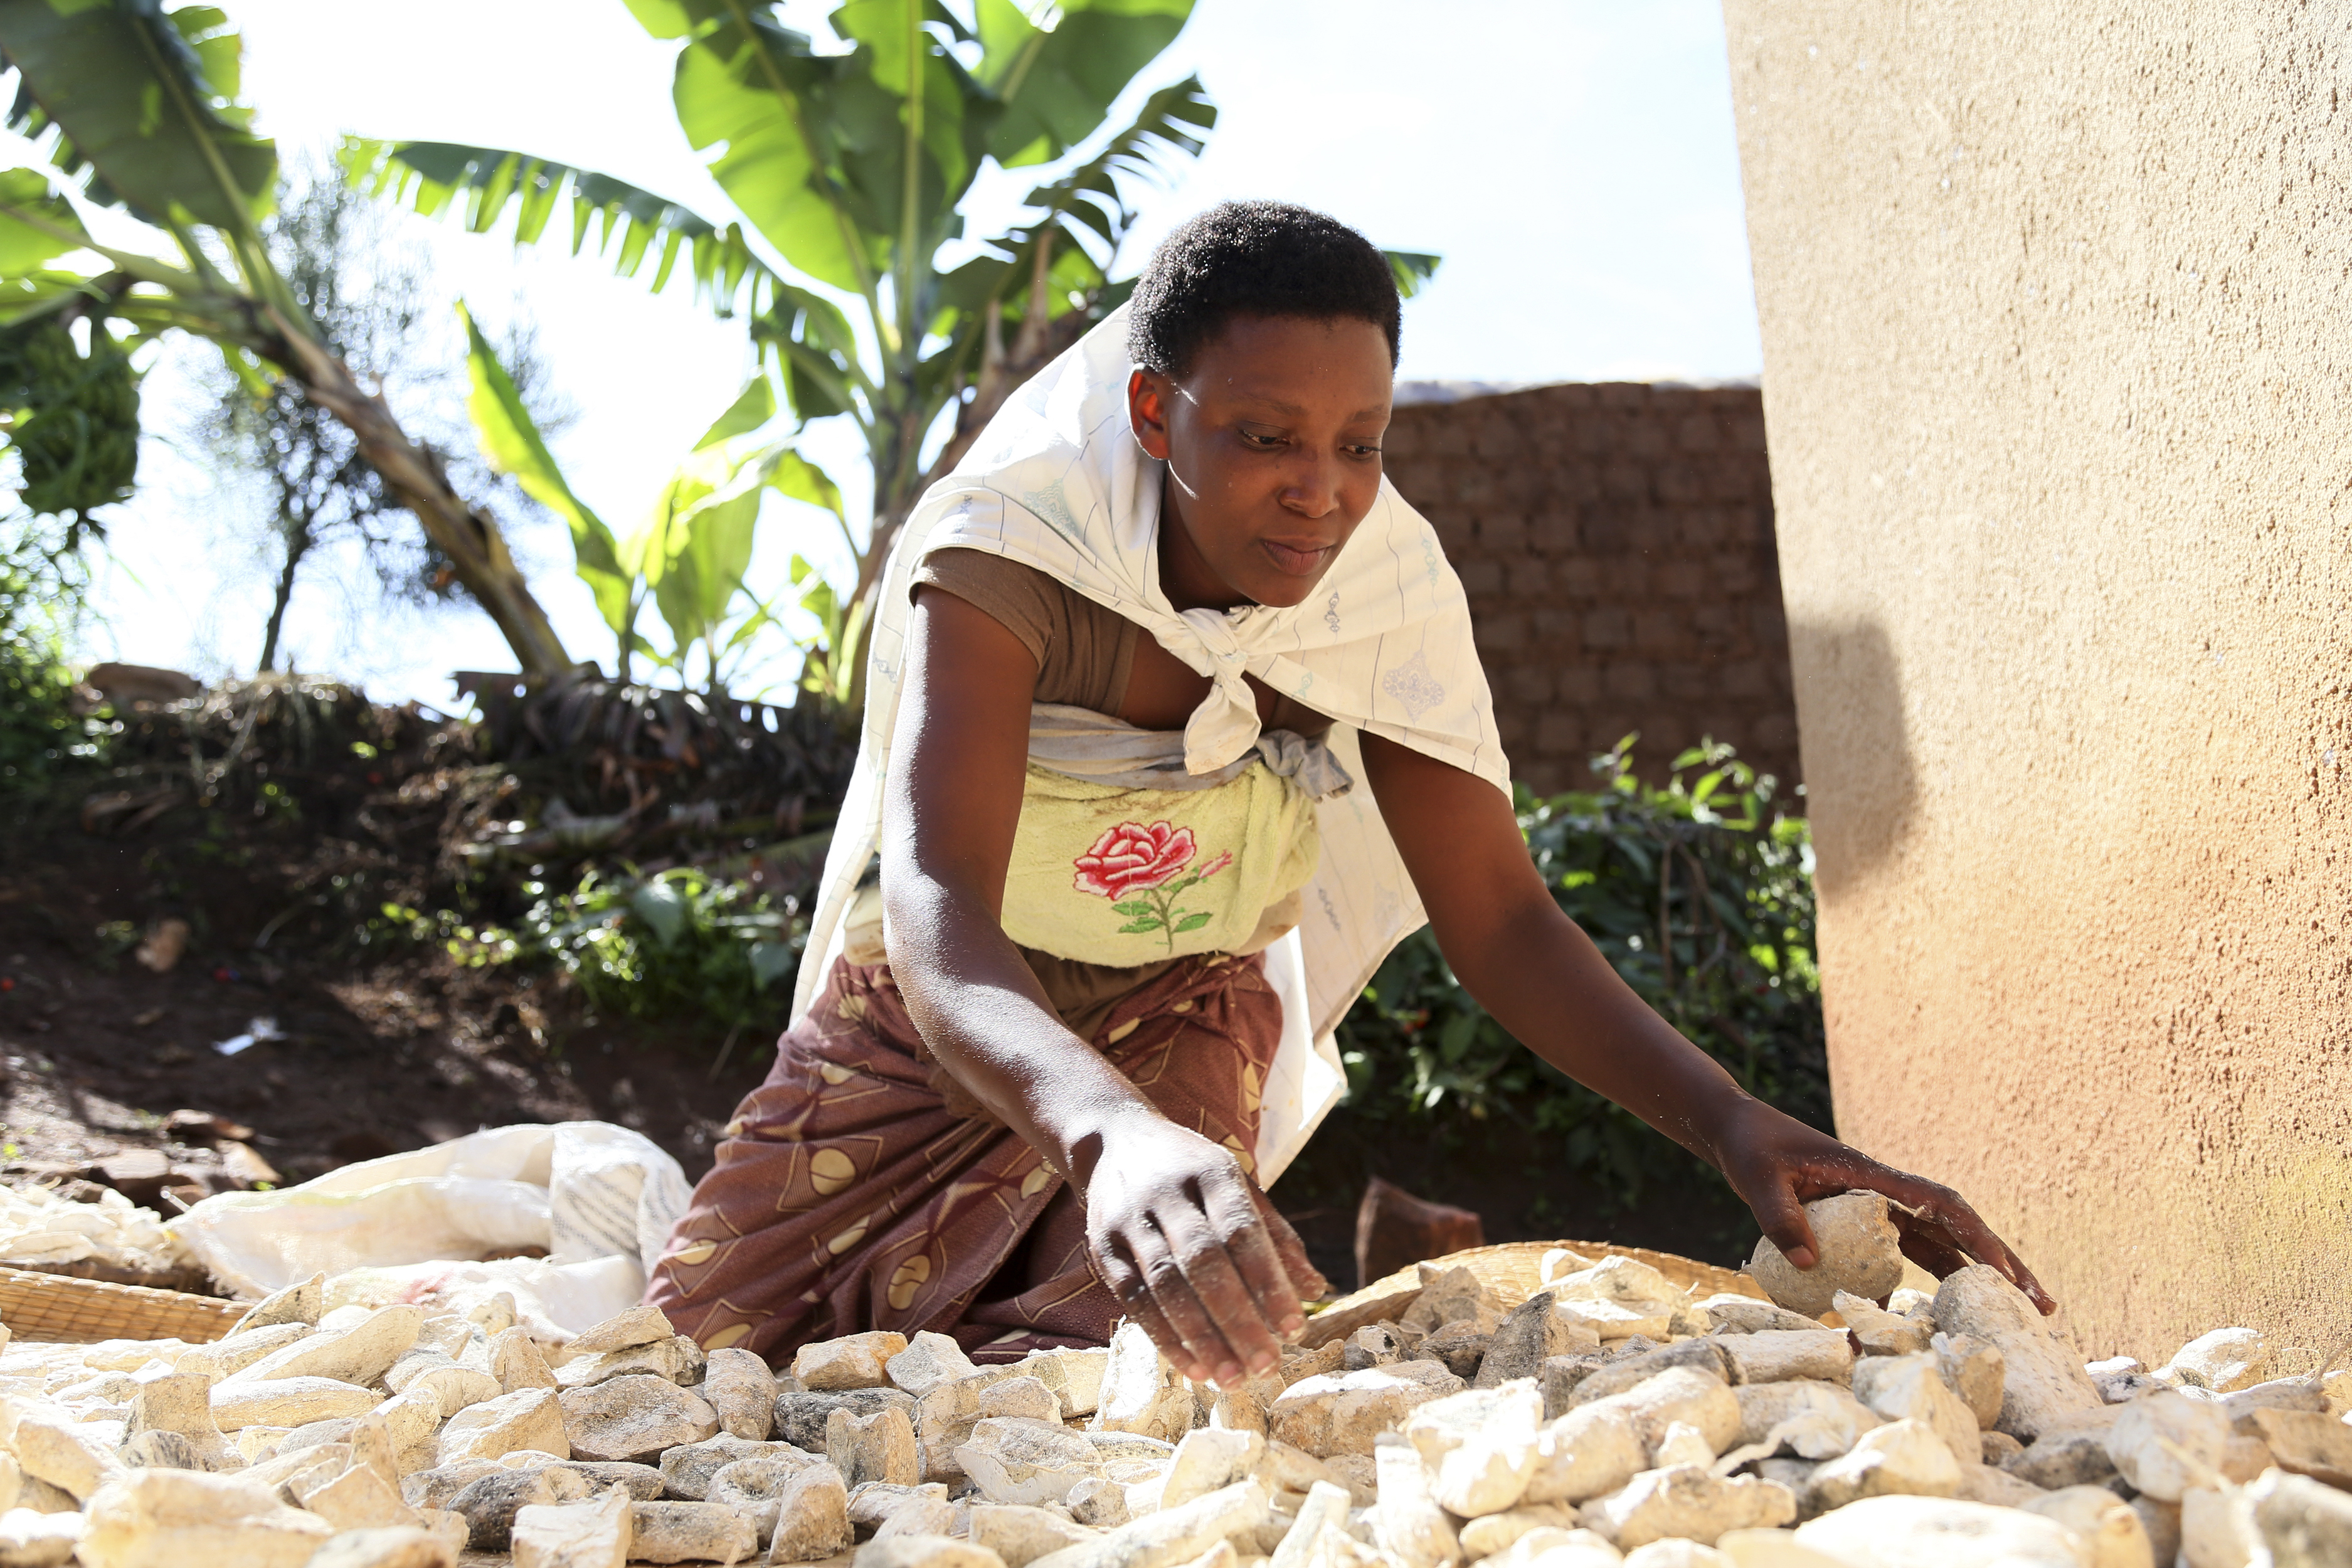 Odette Mukamurenzi is drying cassava, so it can either be sold as cassava chips for animal feed or processed and sold as a flour in the local market. Photo by Michael Stulman/CRS